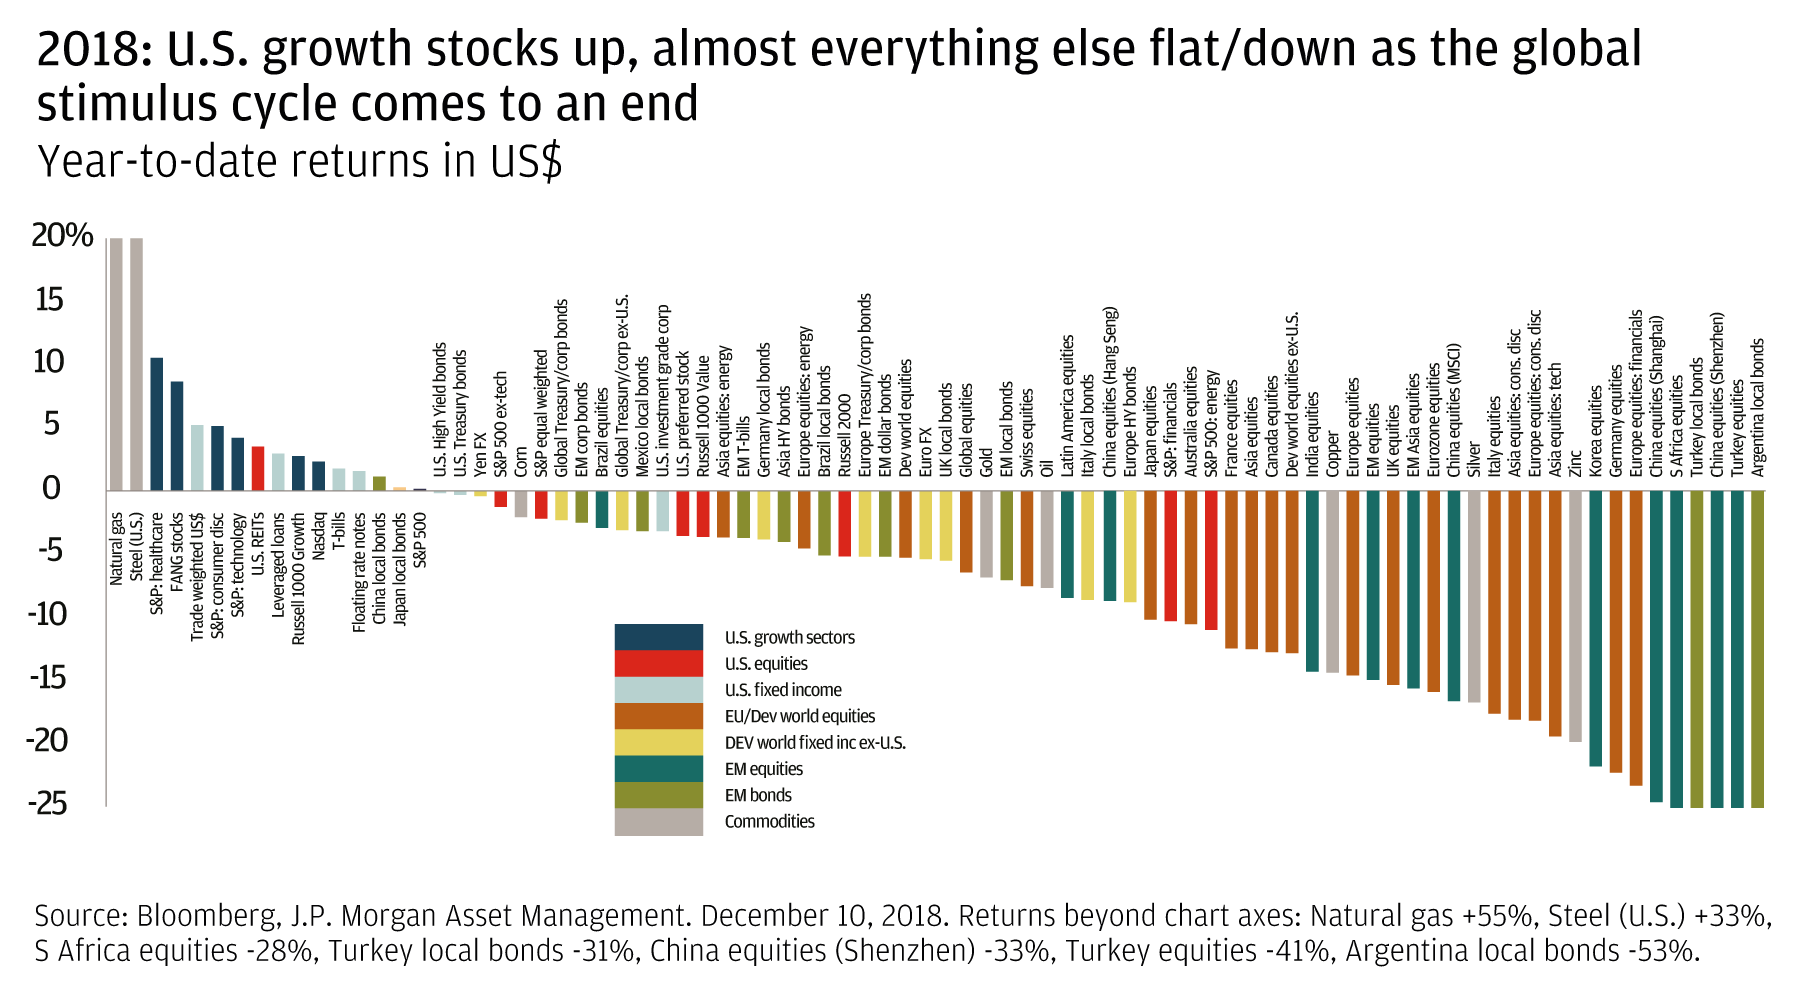 2018: US growth stocks up, almost everything else flat/down as the global stimulus cycle comes to an end